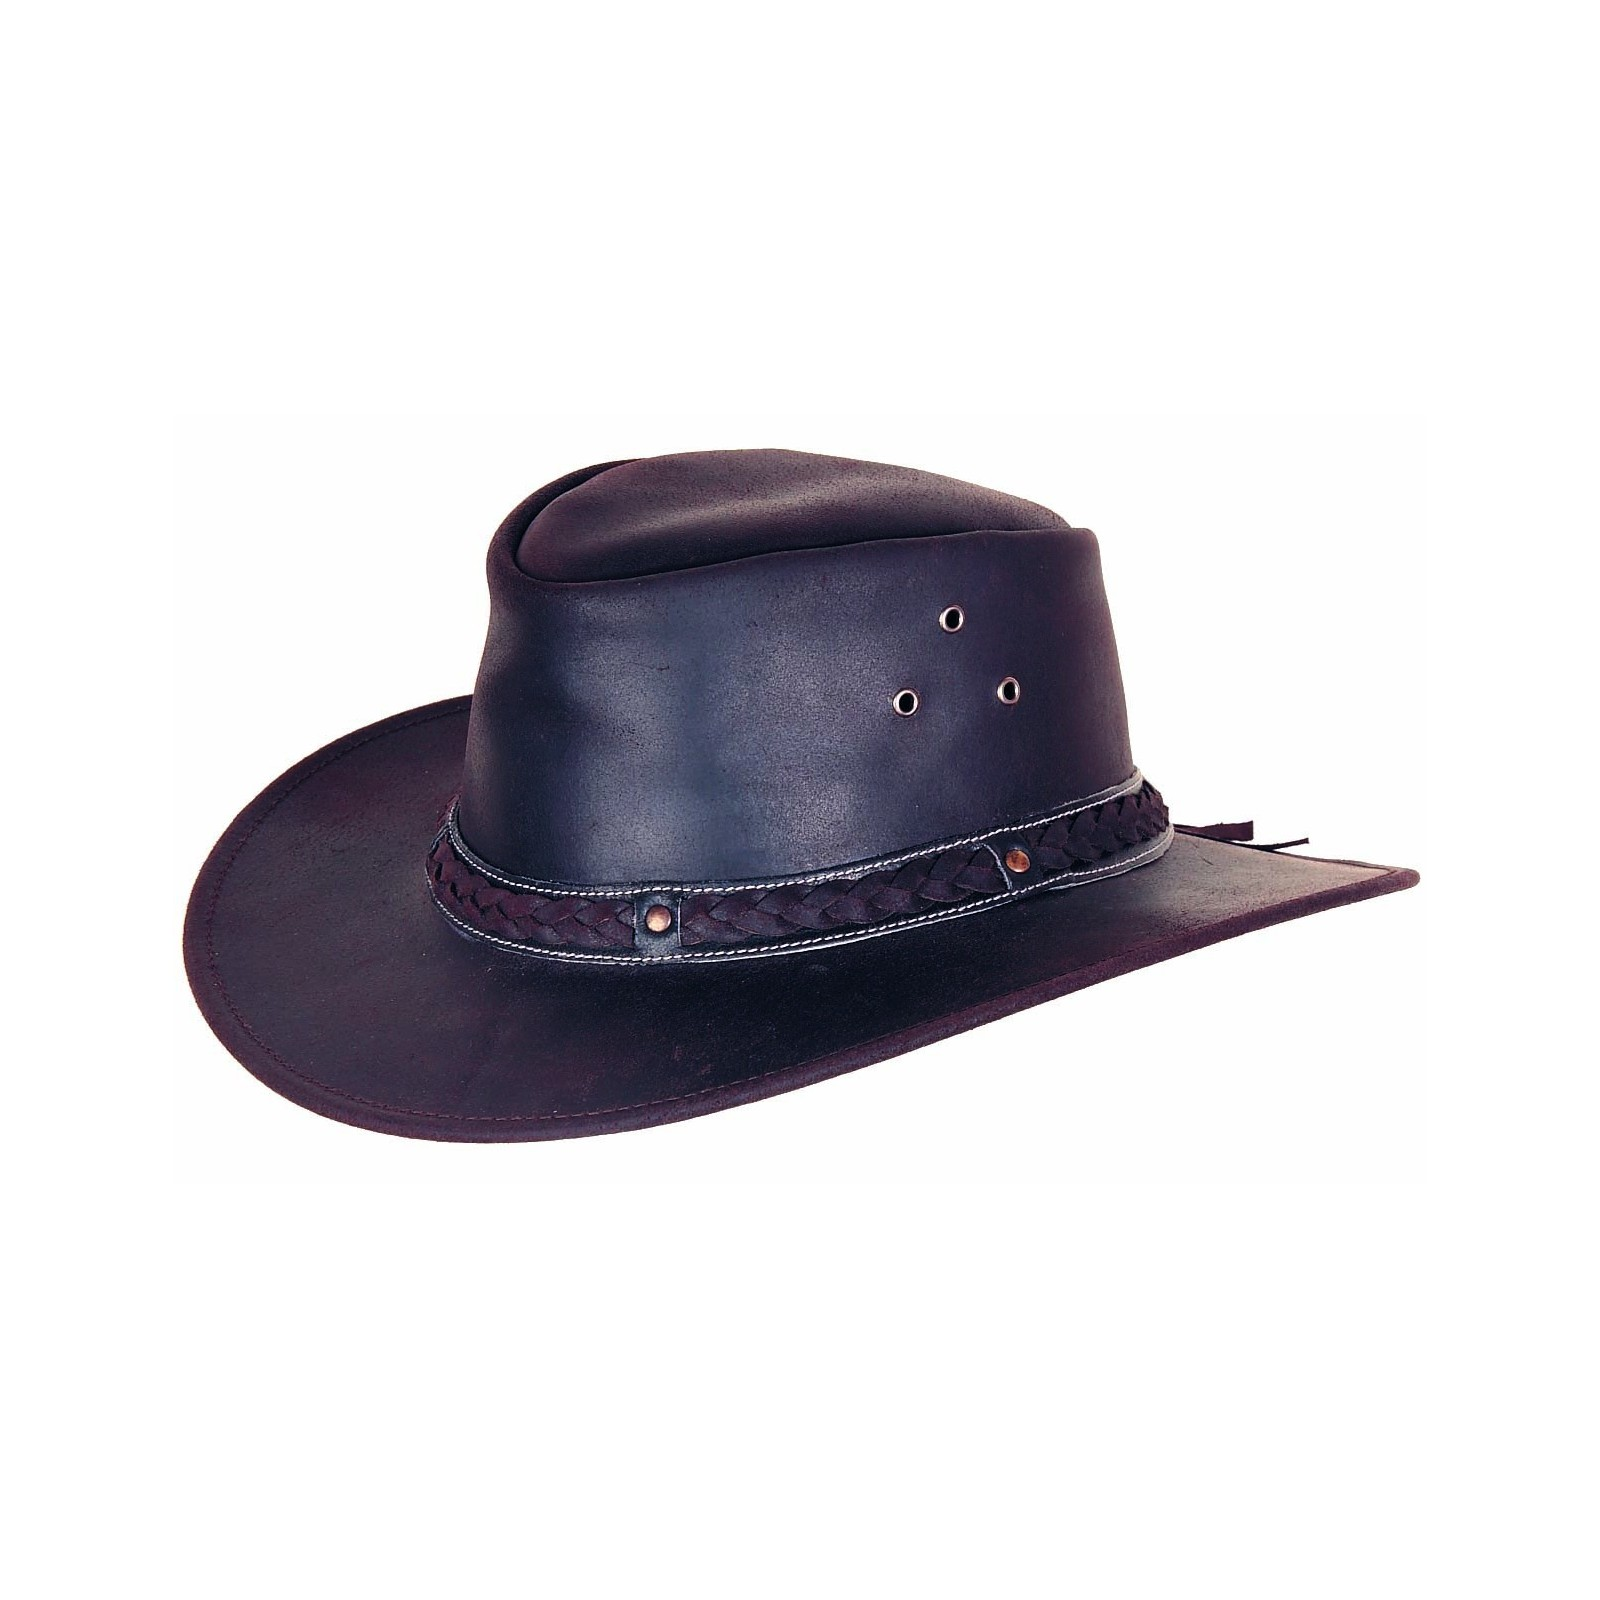 Leather hat Williams